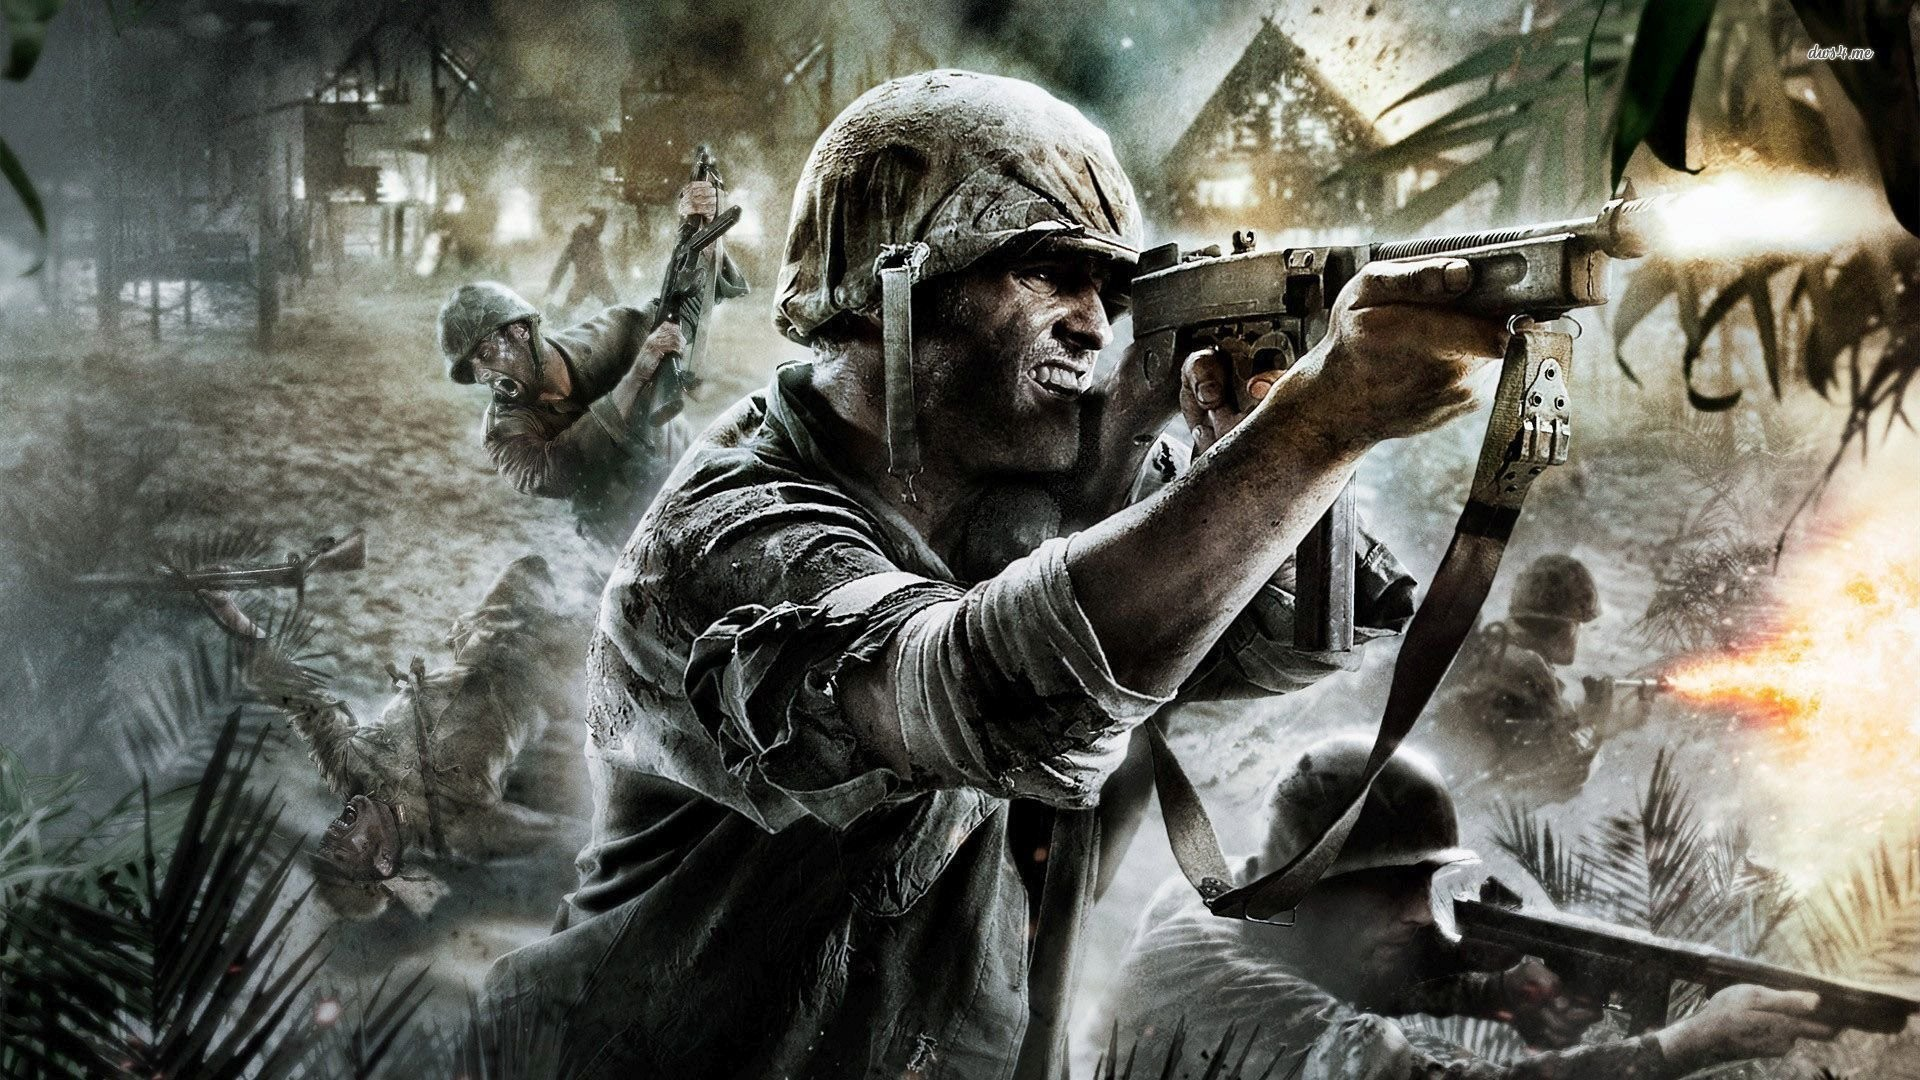 Best Call Of Duty World At War Wallpapers in High Quality, Rubi Roebuck,  513.61